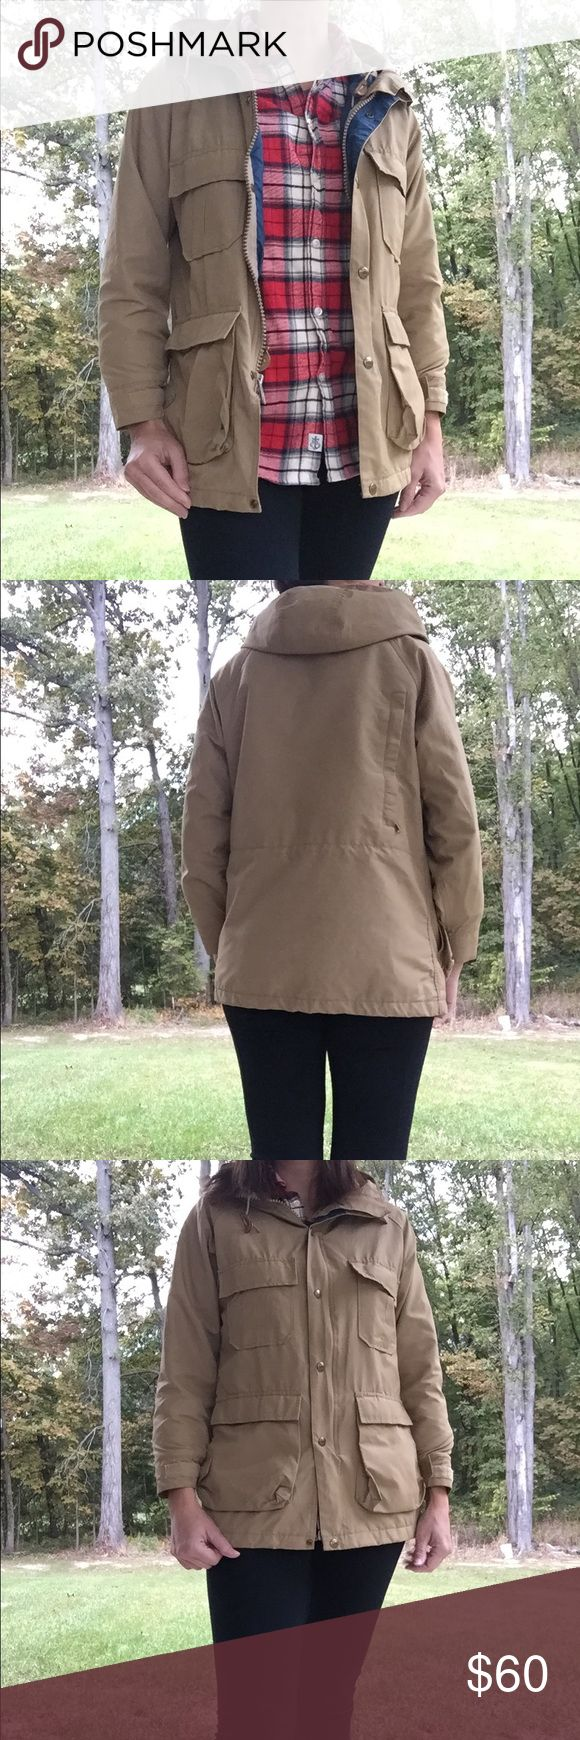 L.L. Bean Baxter State ladies parka/jacket L.L. Bean Baxter State parka/jacket, excellent condition, fully lined, weatherproof, comfortable and stylish. This is more of a light coat and made with 60% cotton and 40% nylon. Size small. Bundle and save 15% on 2 or more items! L.L. Bean Jackets & Coats Utility Jackets